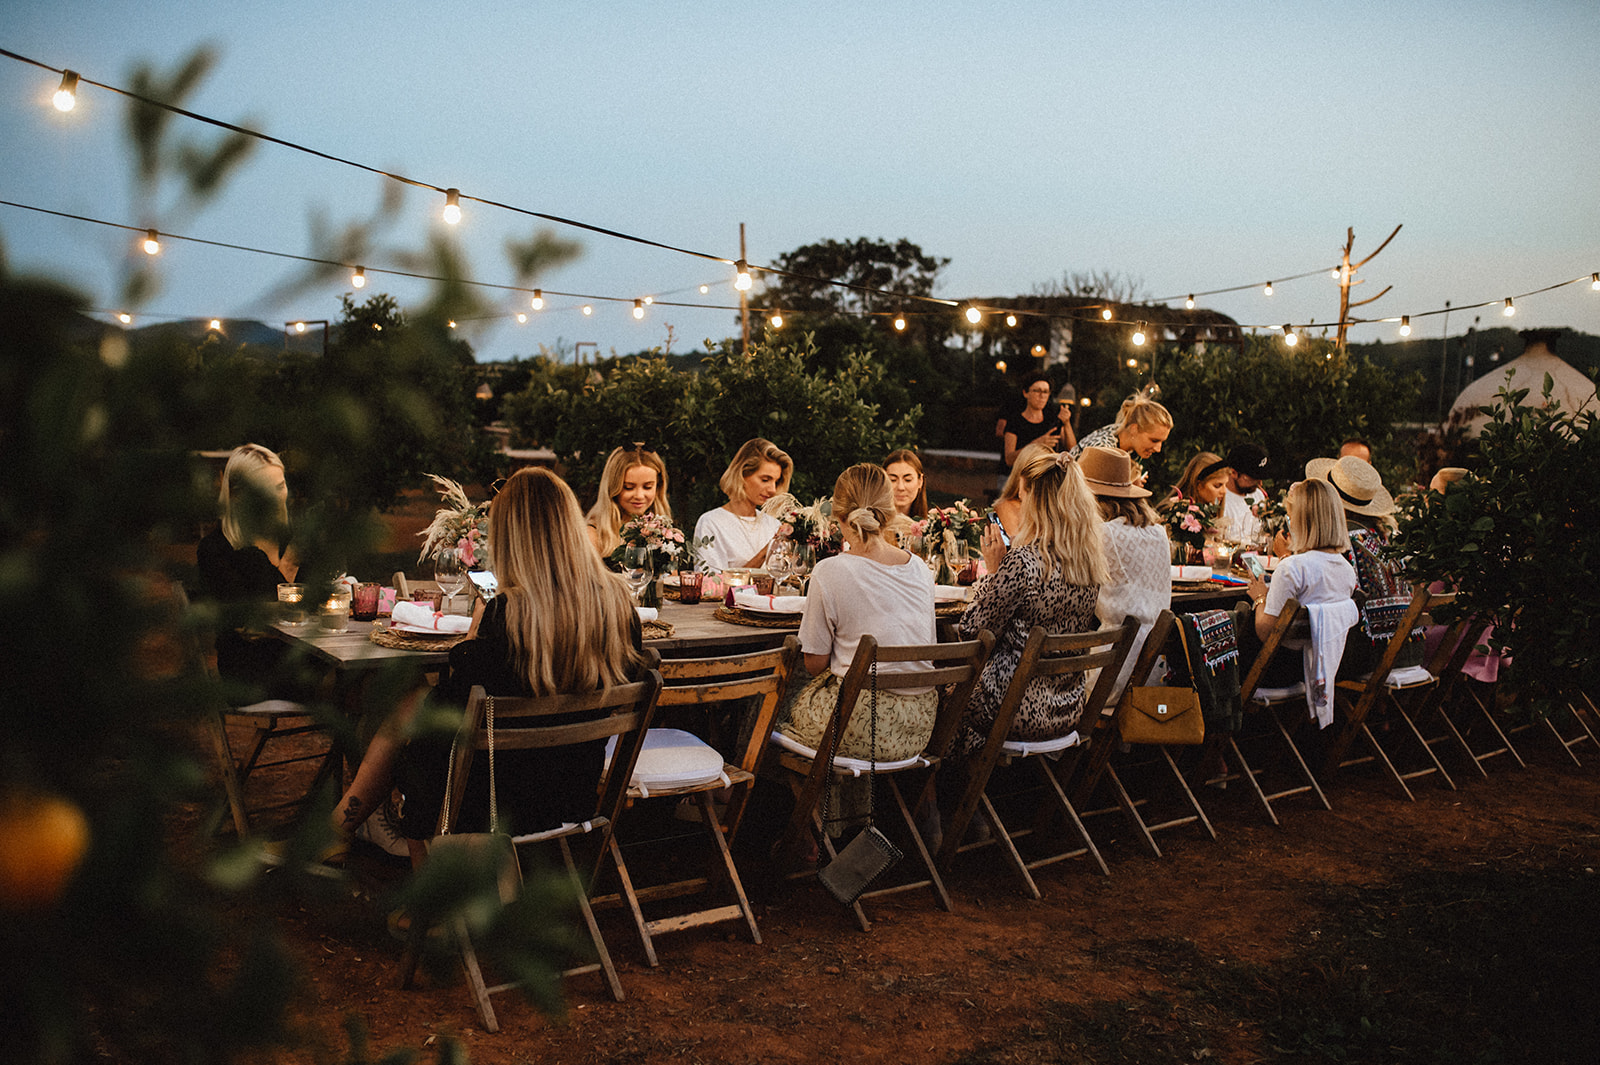 Carmushka-Summerhouse-Influencer-Squad-Teilnehmer-Ibiza-Dinner-Onygo-Farm